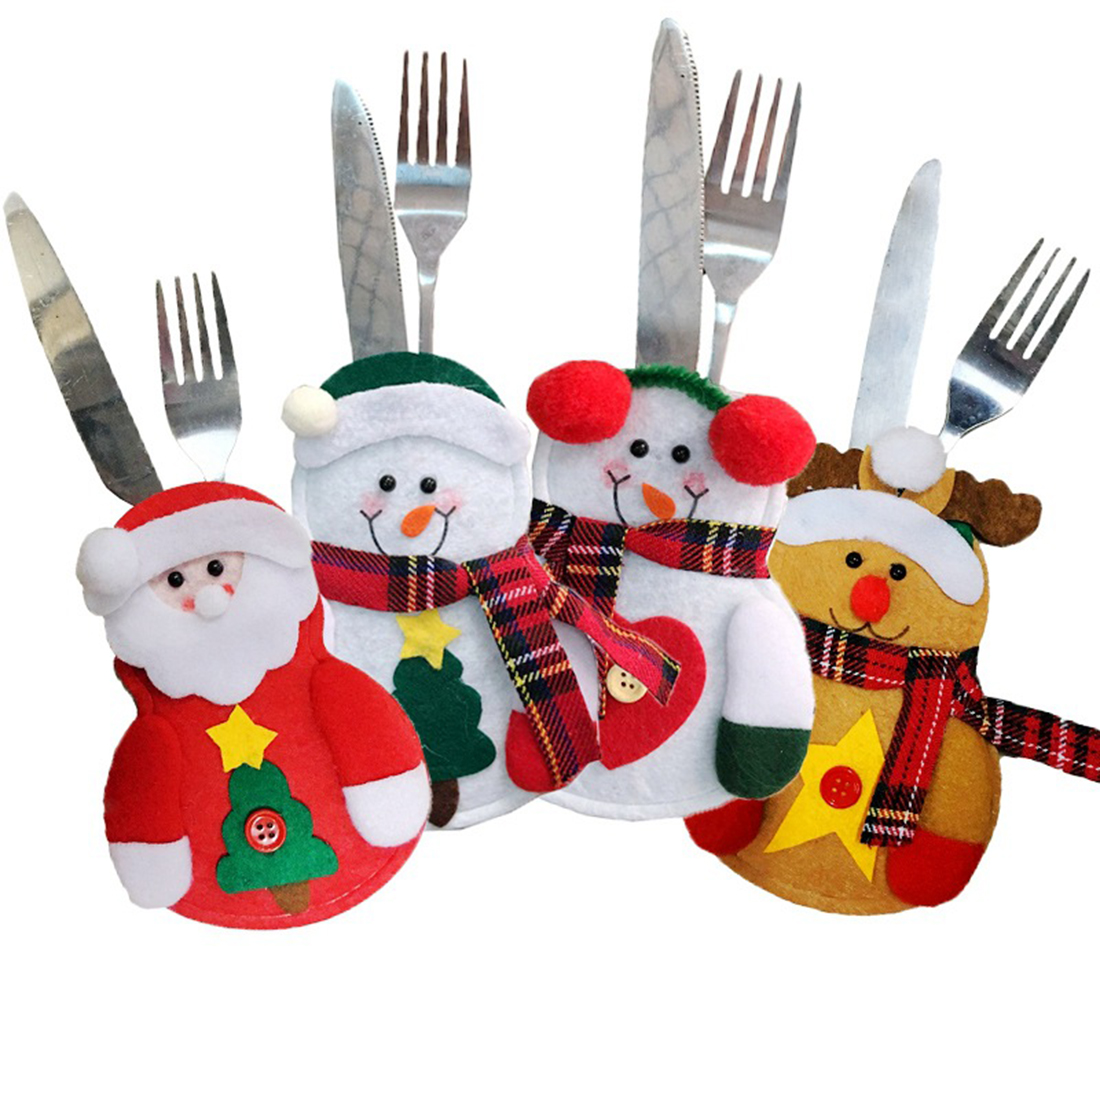 new year merry christmas knife fork cutlery set skirt pants navidad natal christmas decorations for home xmas - Merry Christmas Decorations